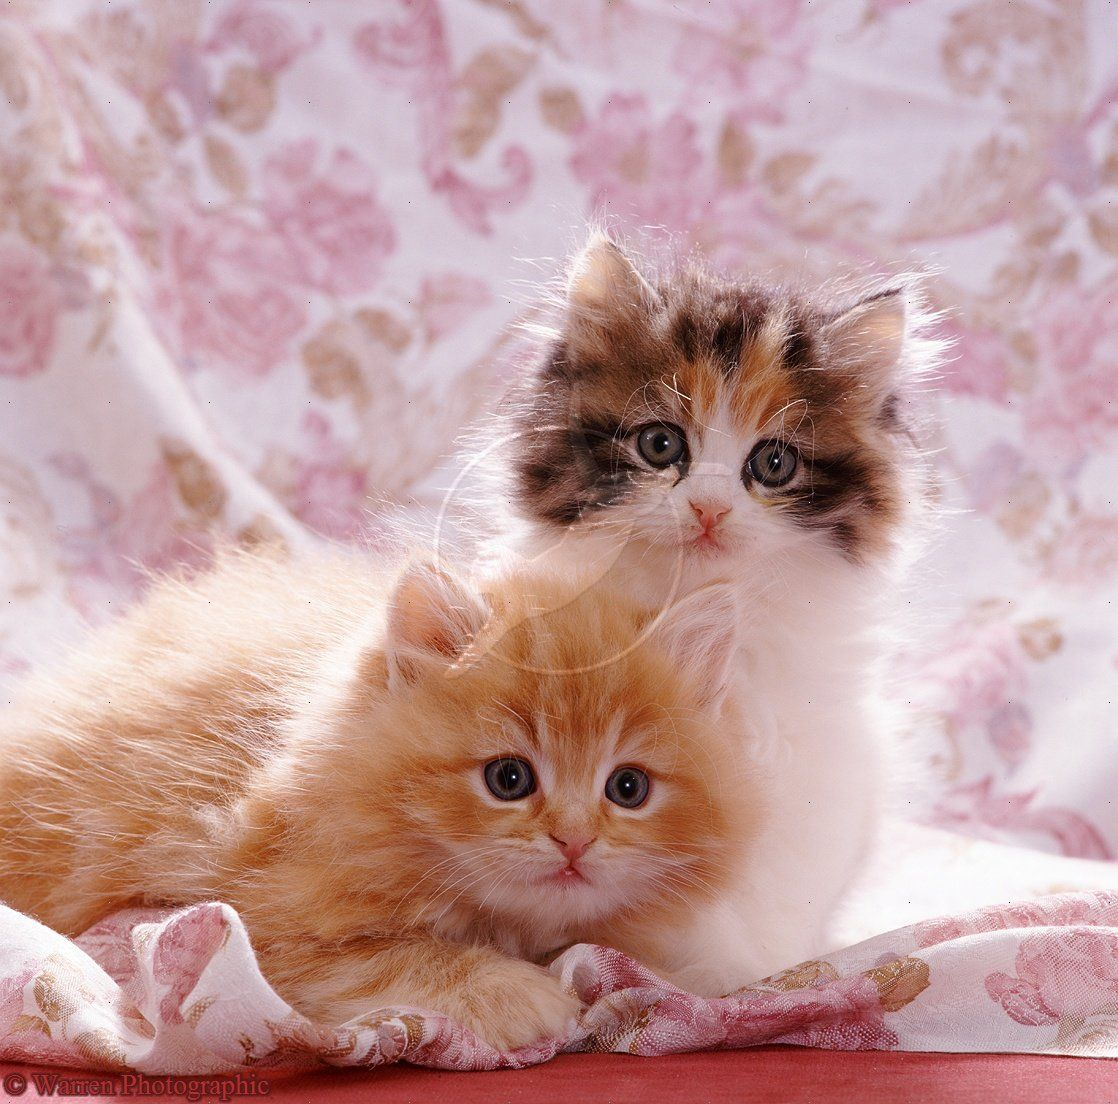 cute cats images | very cute cat and kitten picture cute ...